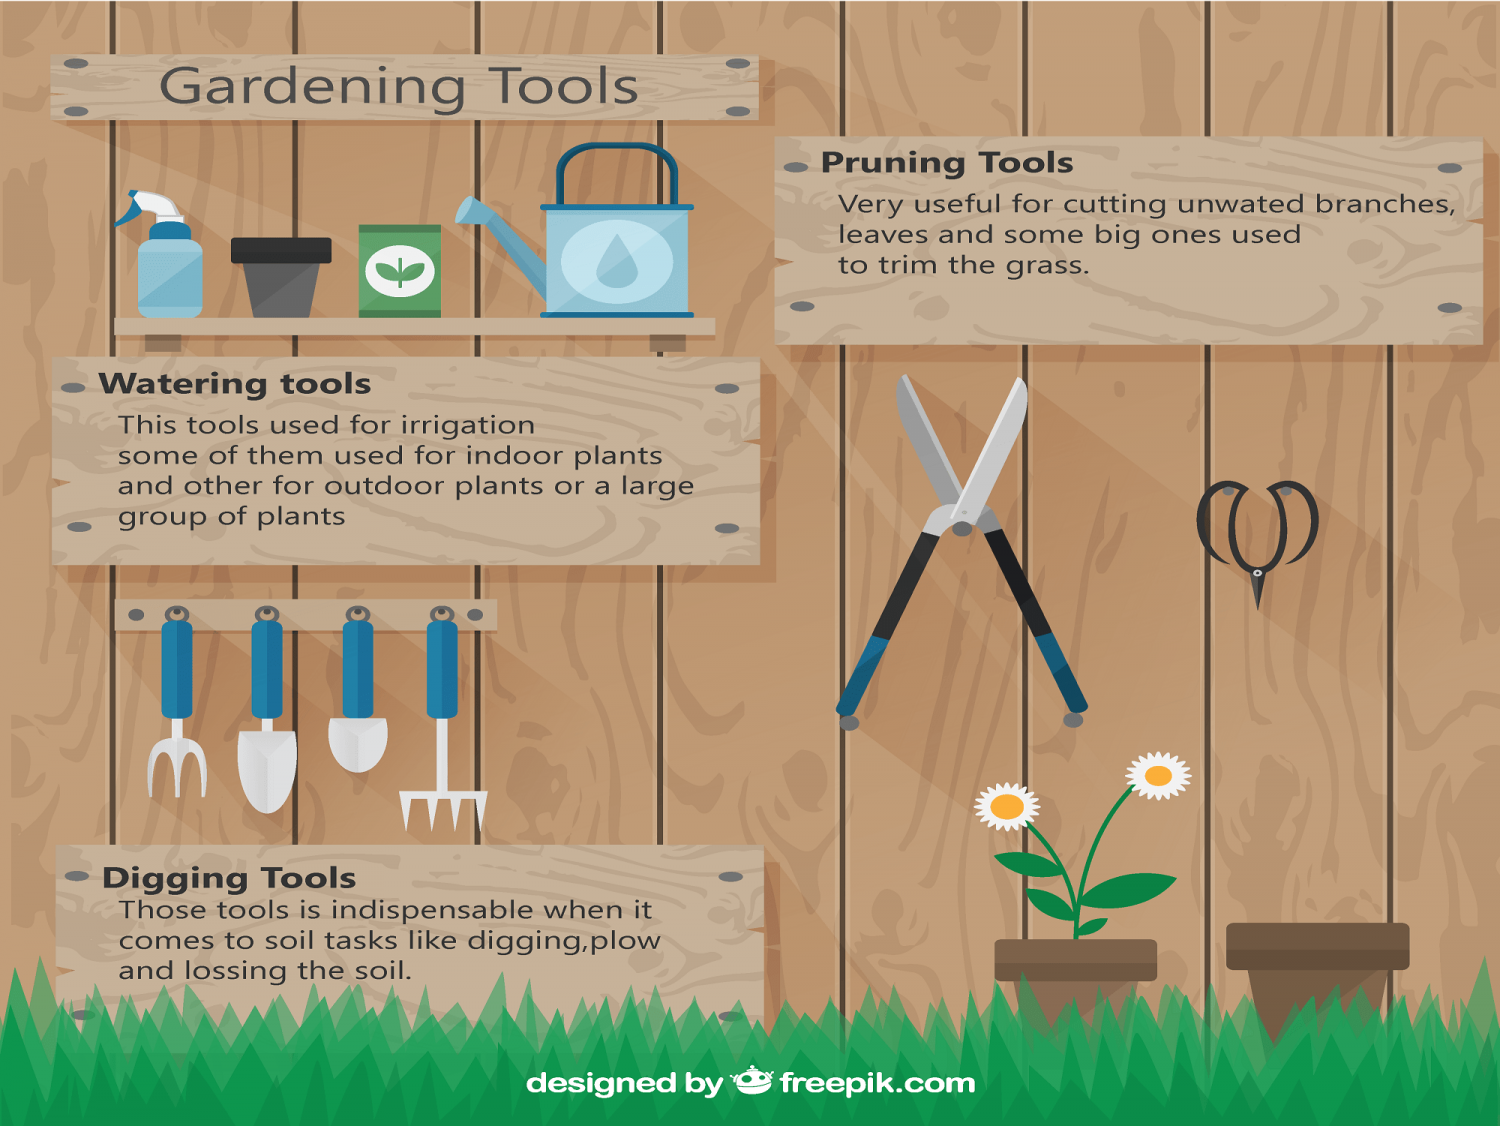 Gardening tools list with pictures for Gardening tools list and their uses